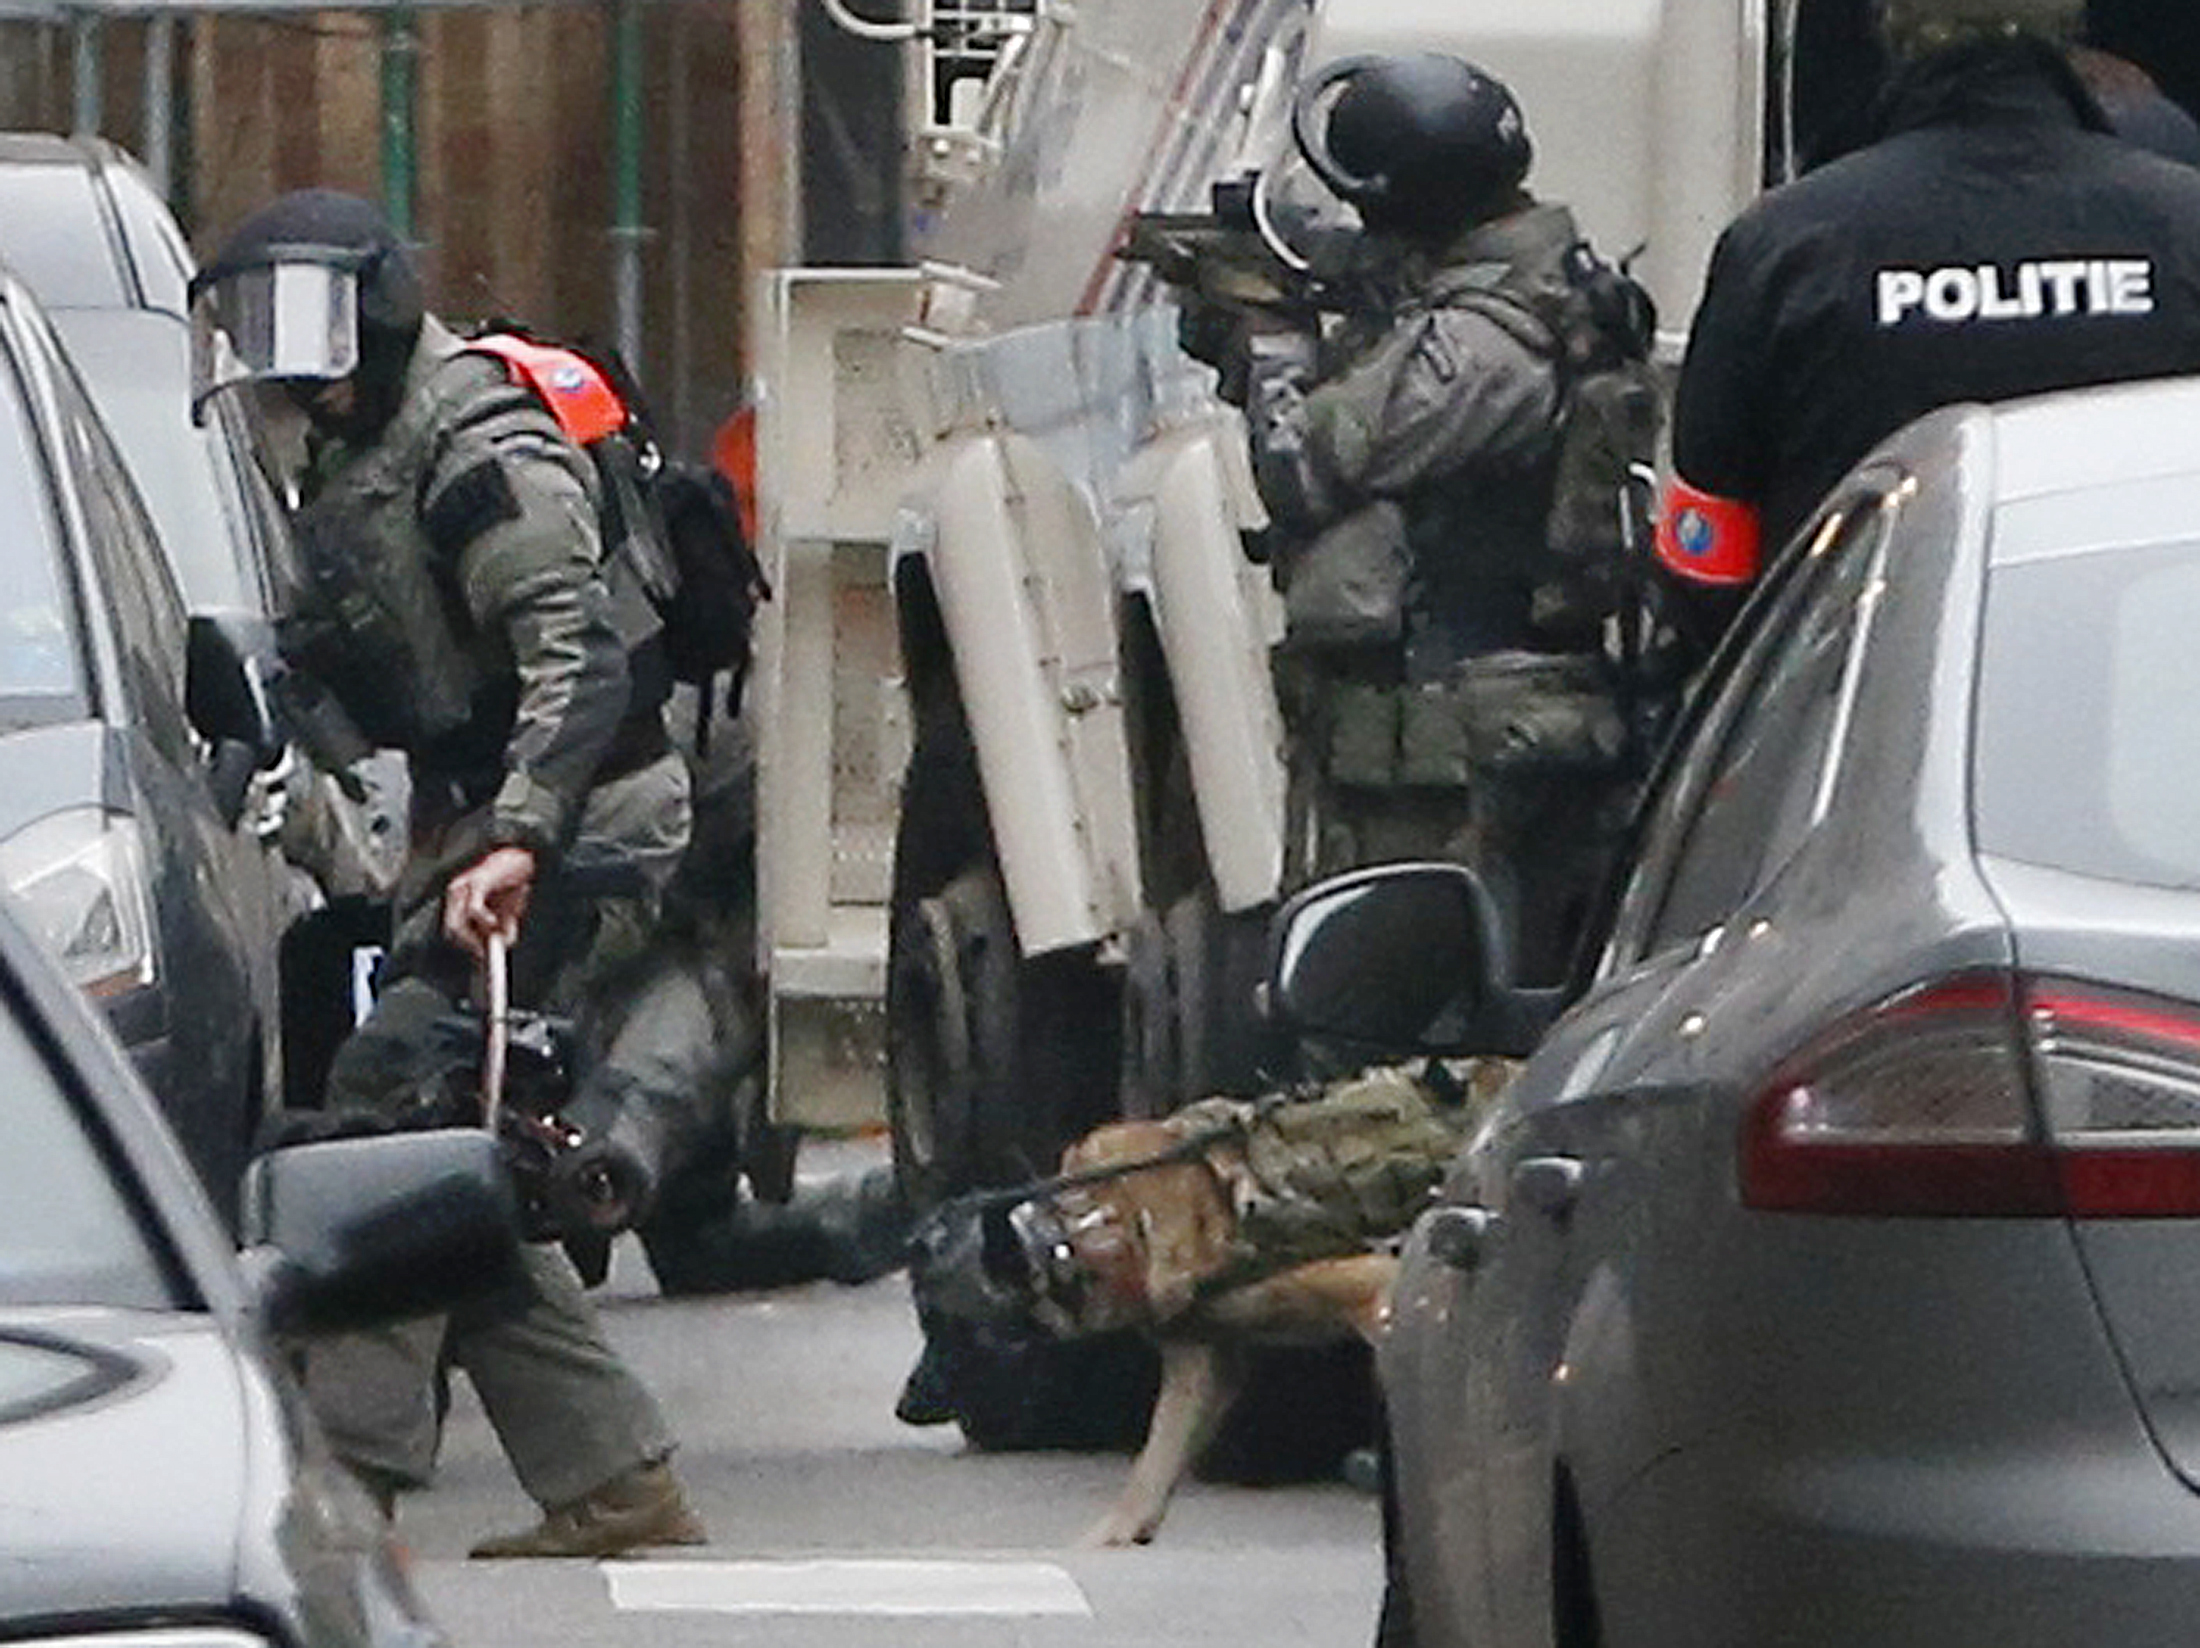 Police at the scene of a security operation in the Brussels suburb of Molenbeek in Brussels, Belgium, March 18, 2016.    REUTERS/Francois Lenoir  TPX IMAGES OF THE DAY - RTSB3XX